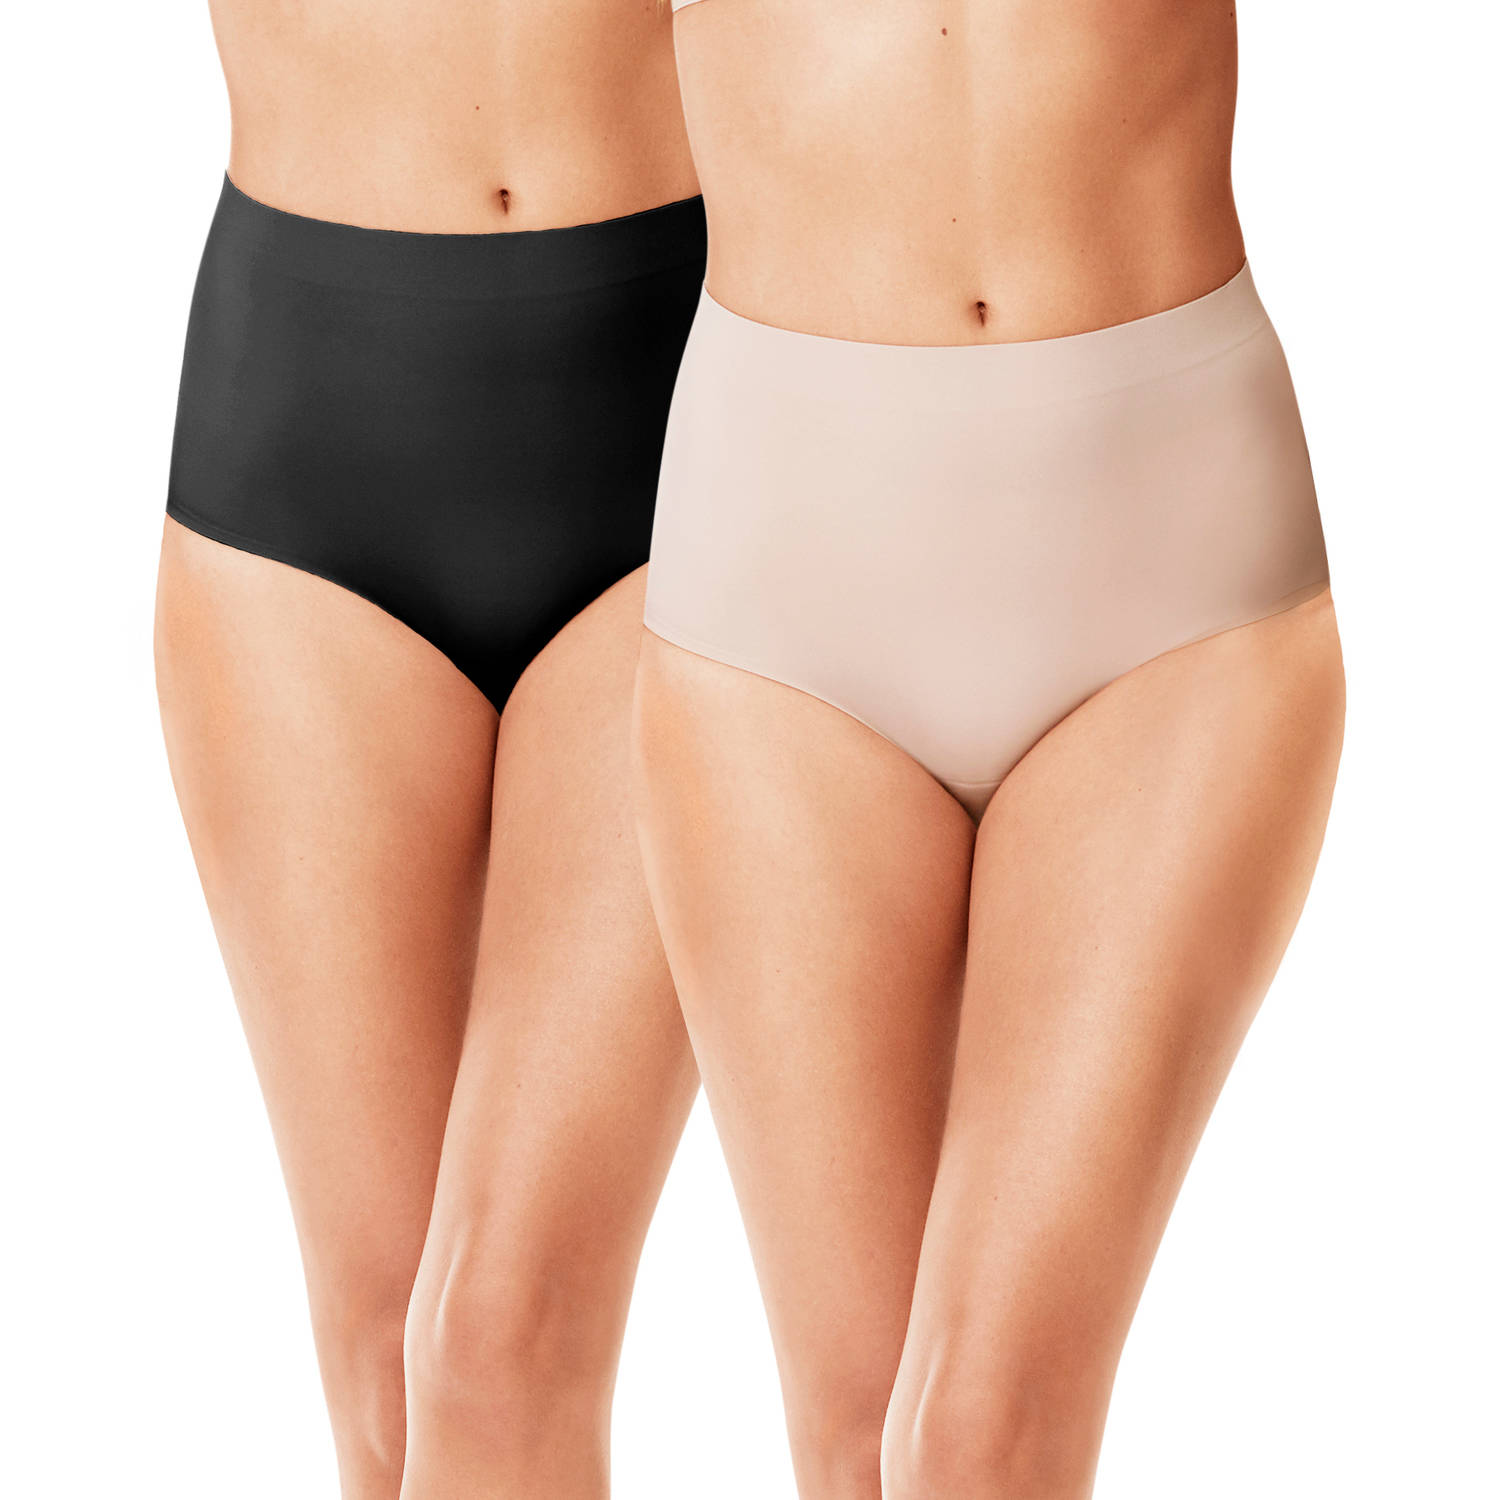 Blissful Benefits by Warner's Shaping Brief - 2 Pack